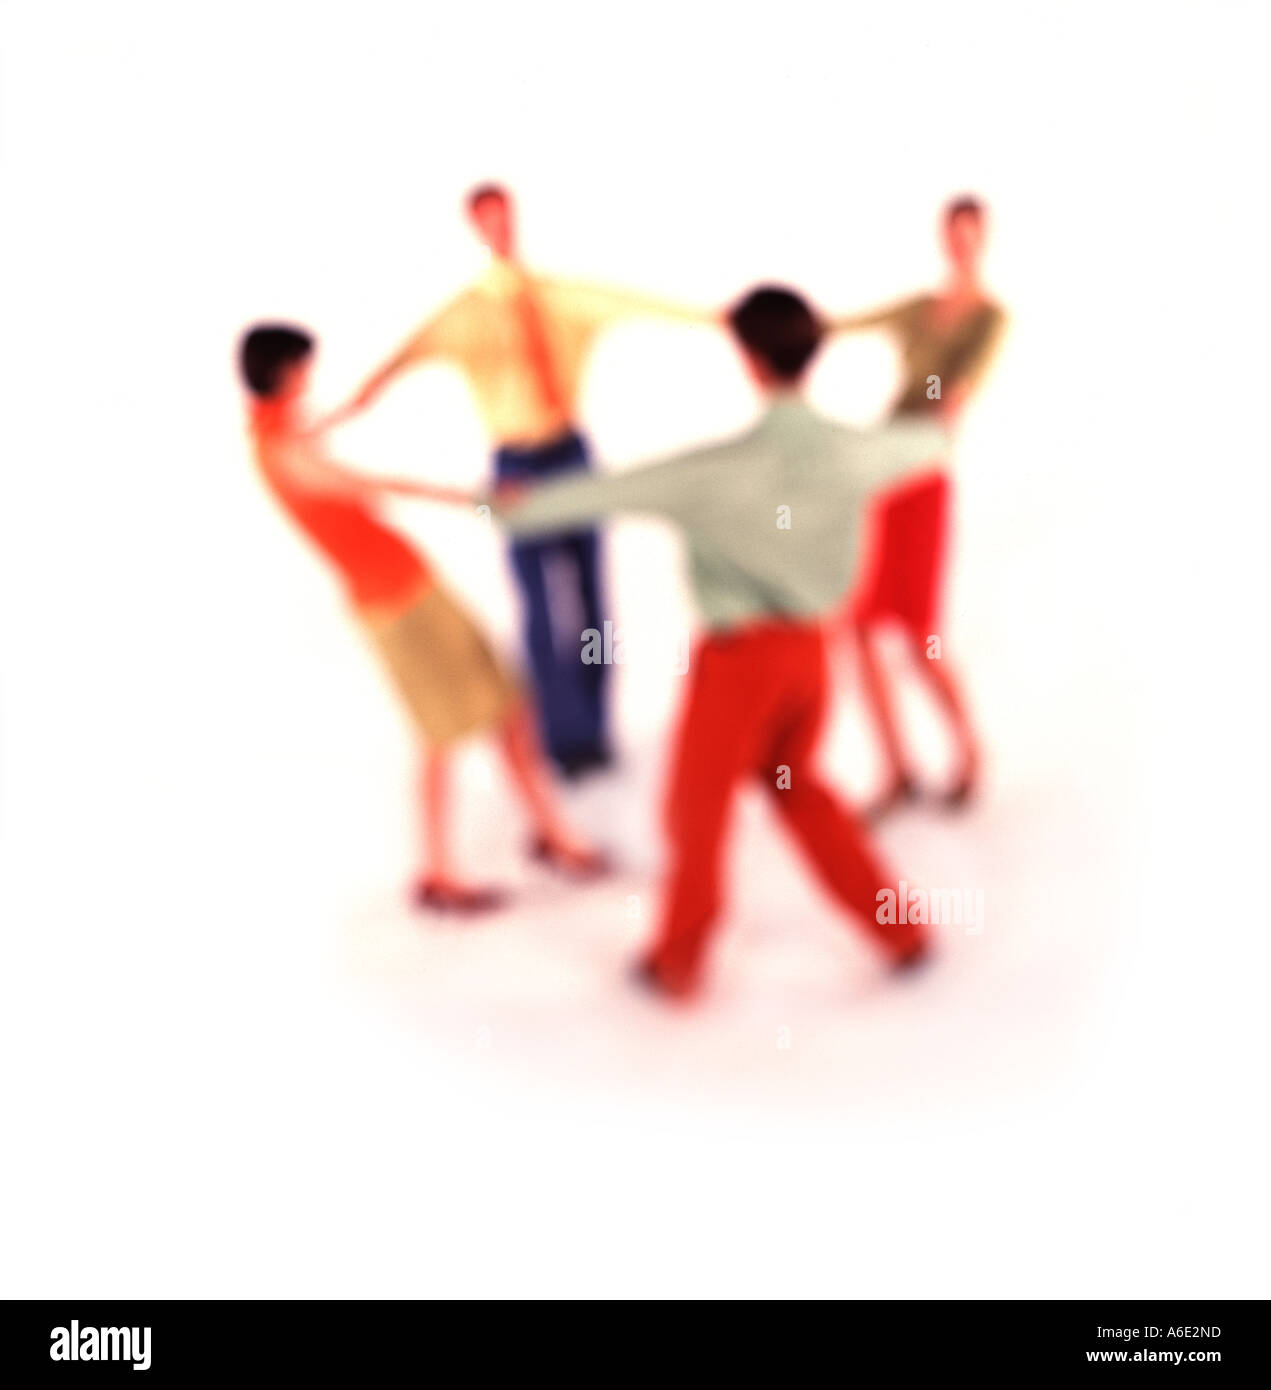 Group of 4 Business people holding hands in circle. Soft Focus. Stock Photo